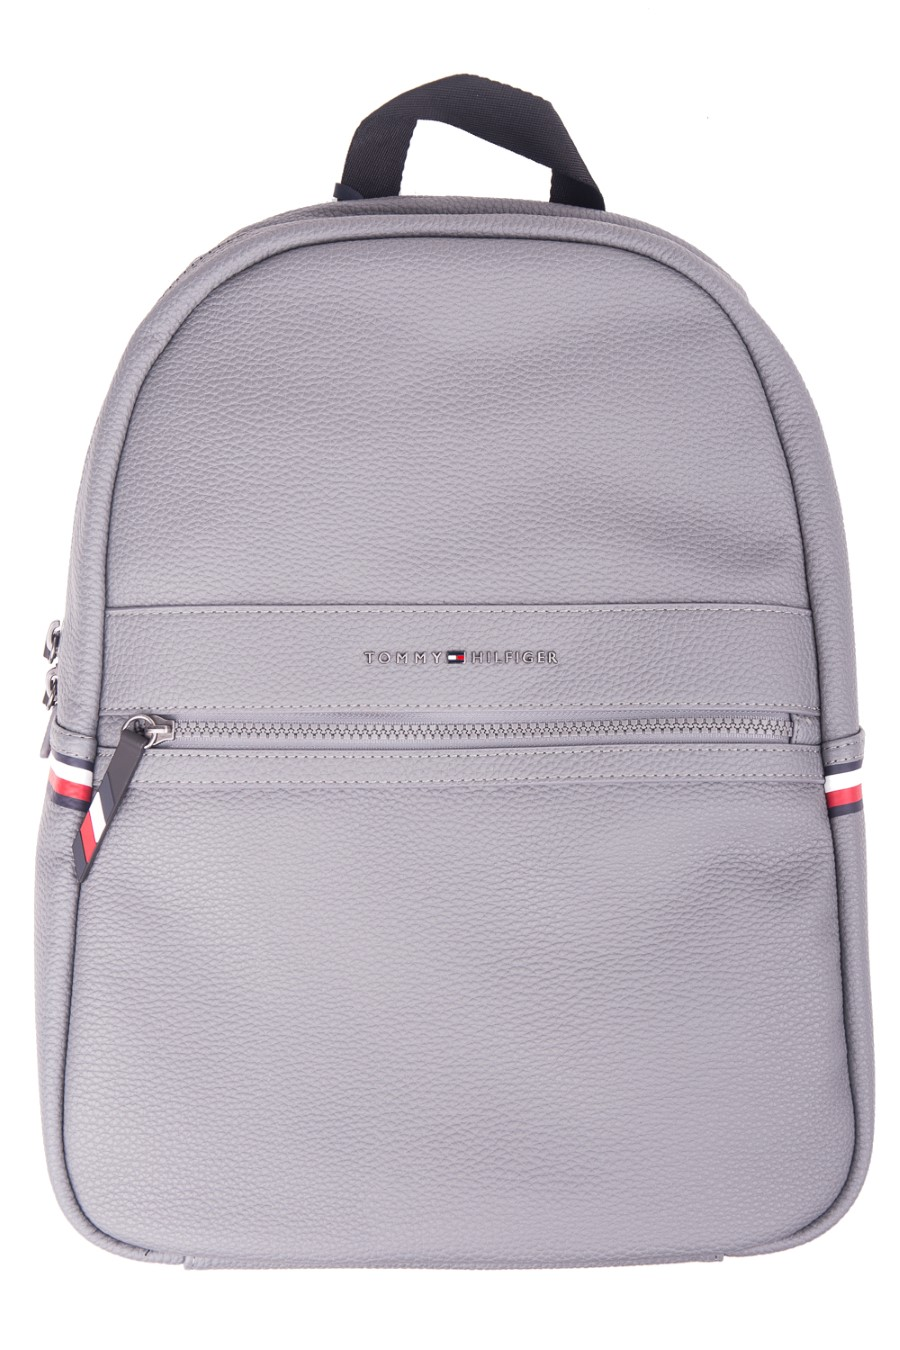 Tommy Hilfiger šedý unisex batoh Essential Backpack II Smoked Pearl 2e58c787d3